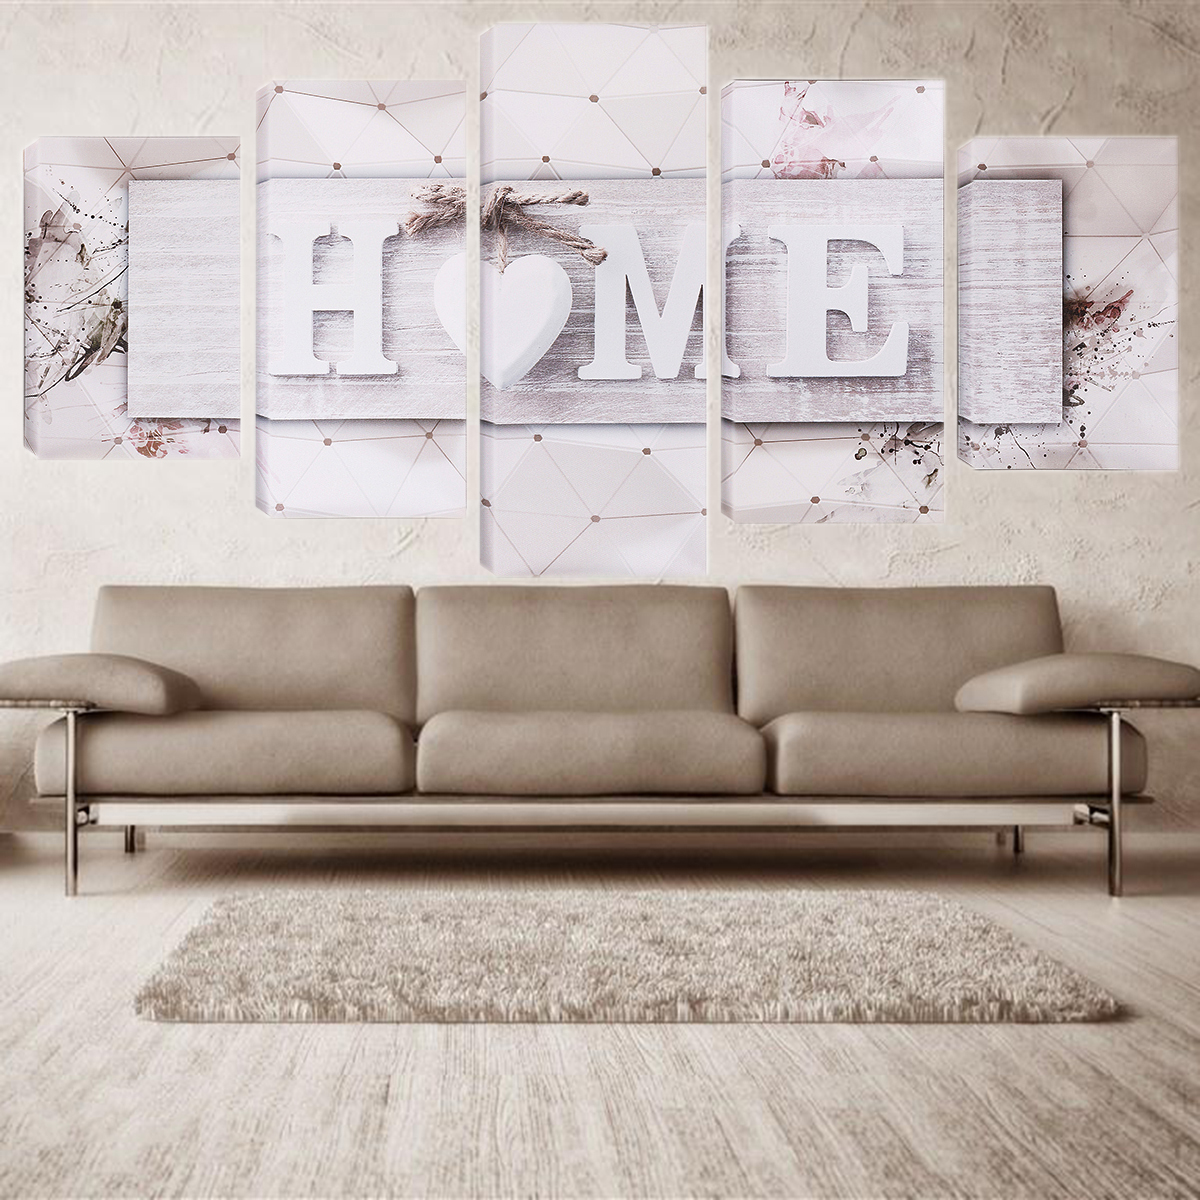 5 Pcs Unframed Canvas Art Print Paintings Picture Home Modern Wall Hanging Decor